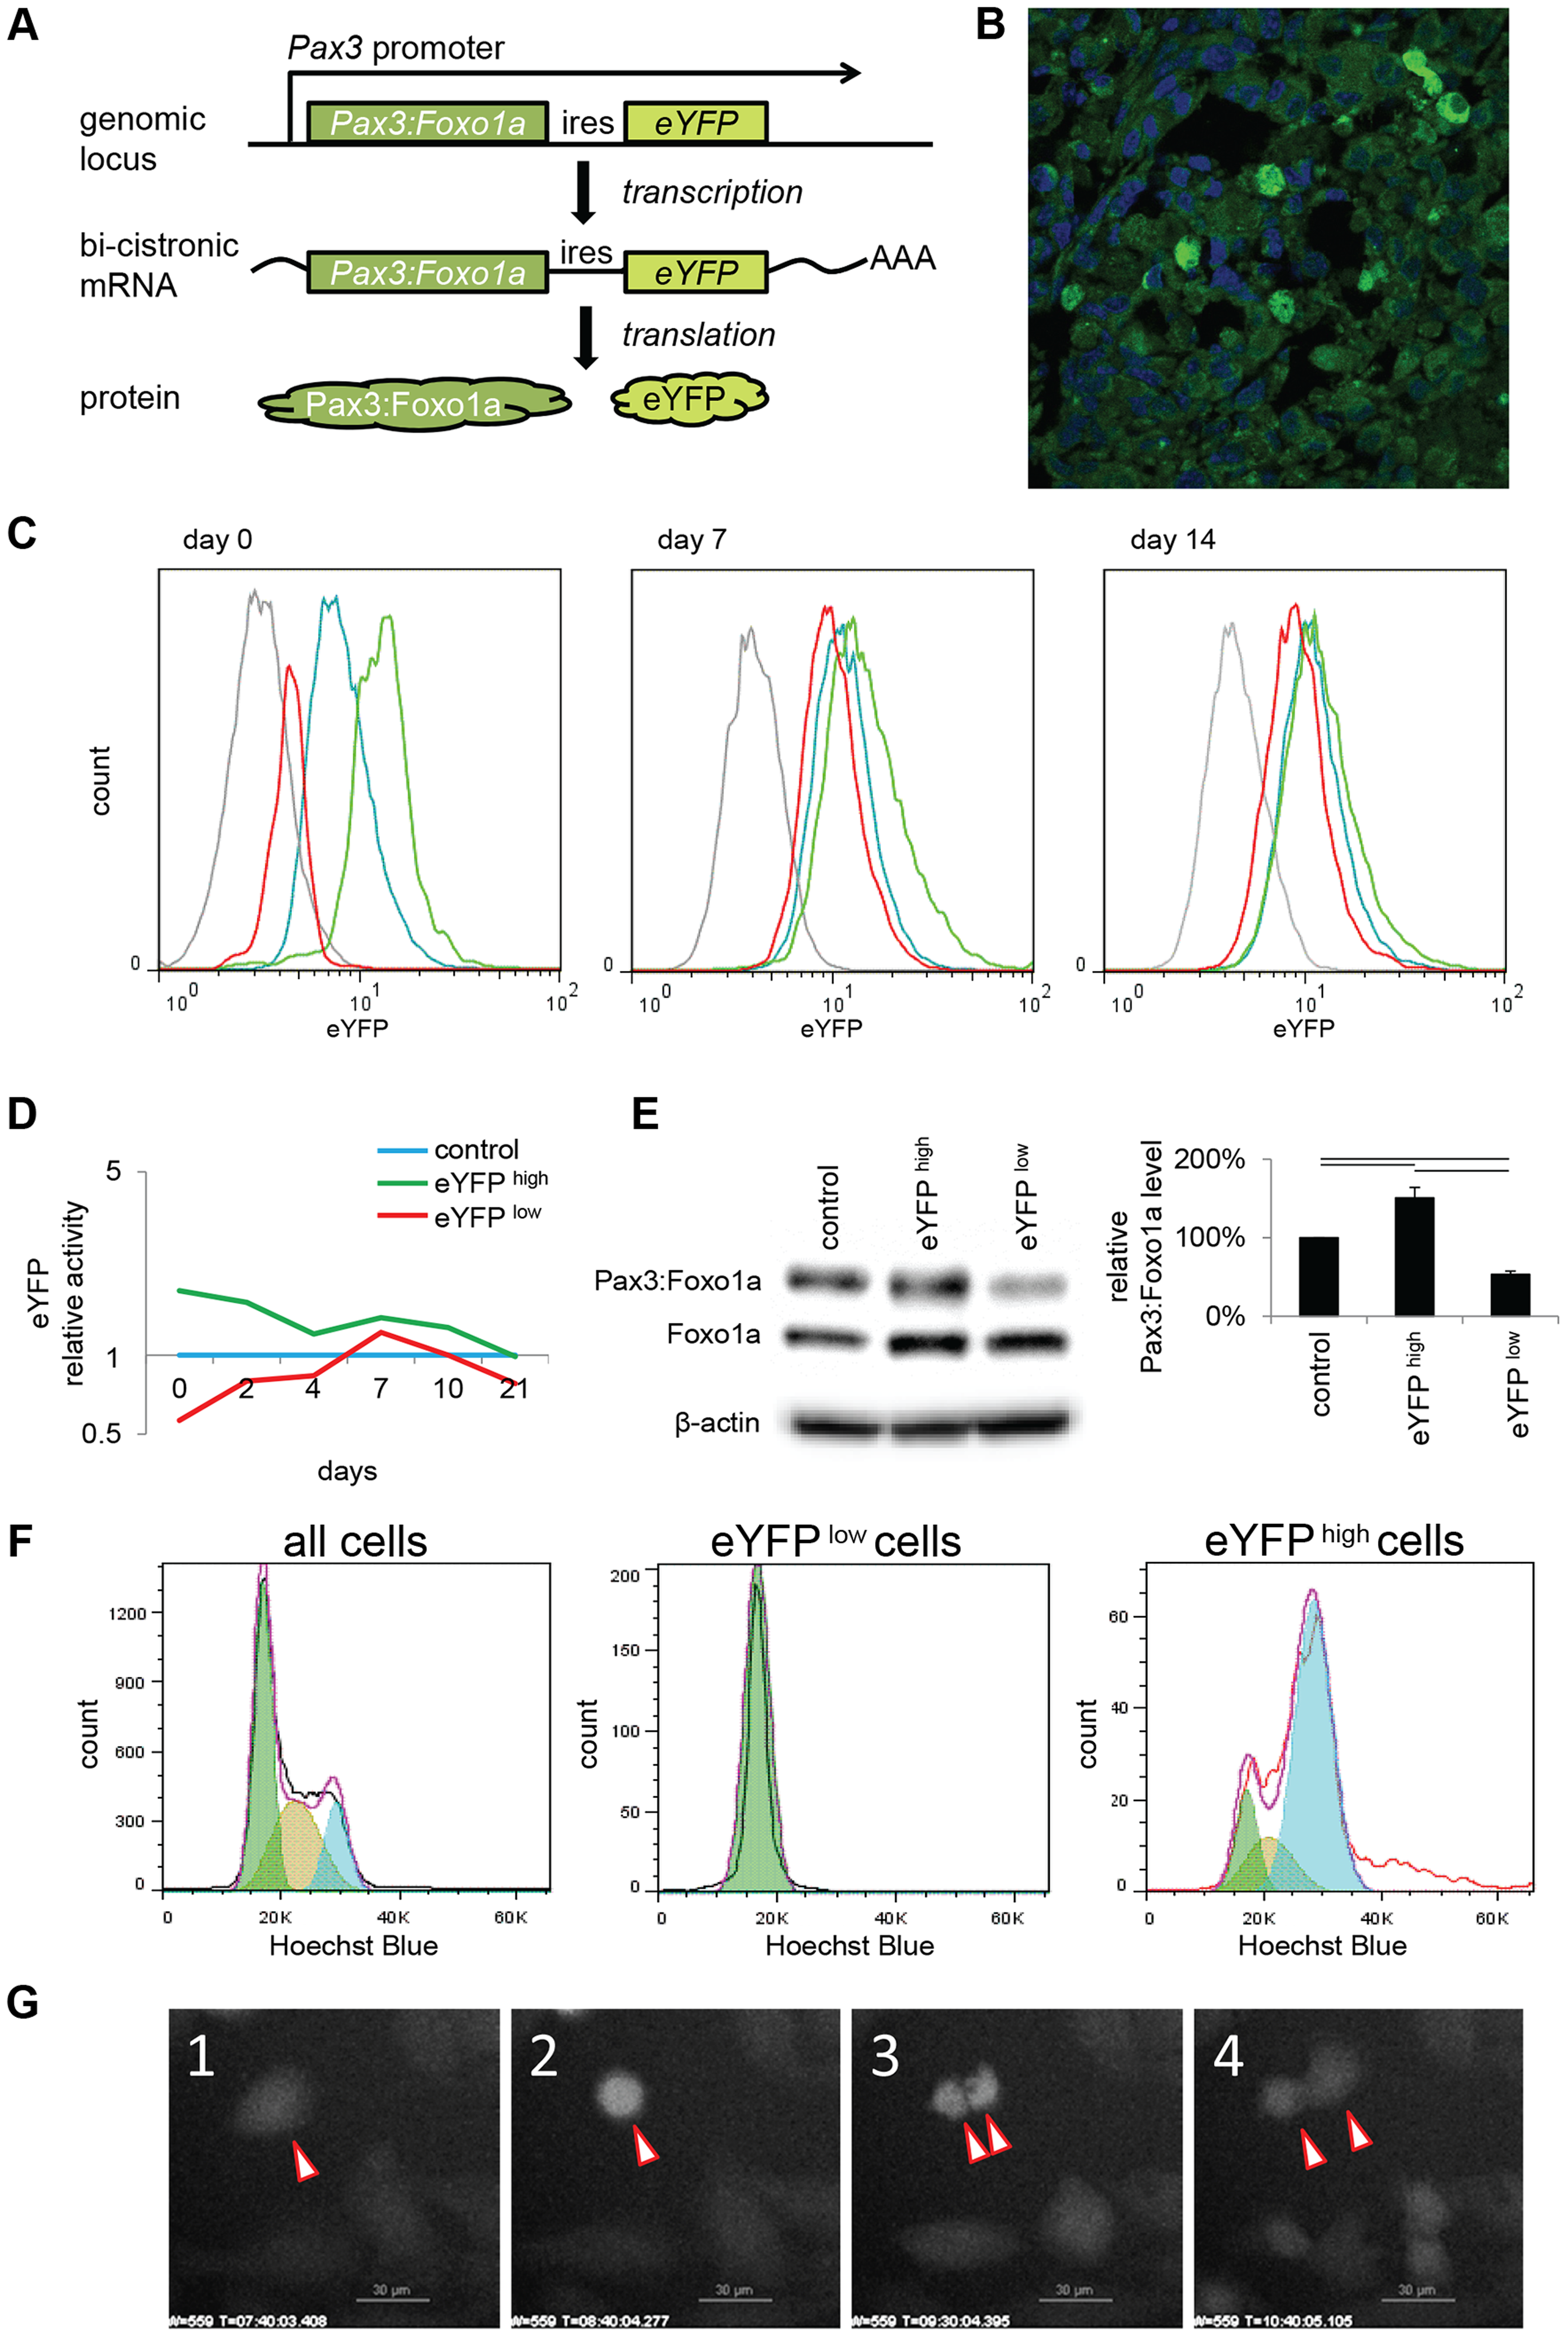 eYFP activity and Pax3:Foxo1a expression is cell cycle specific.